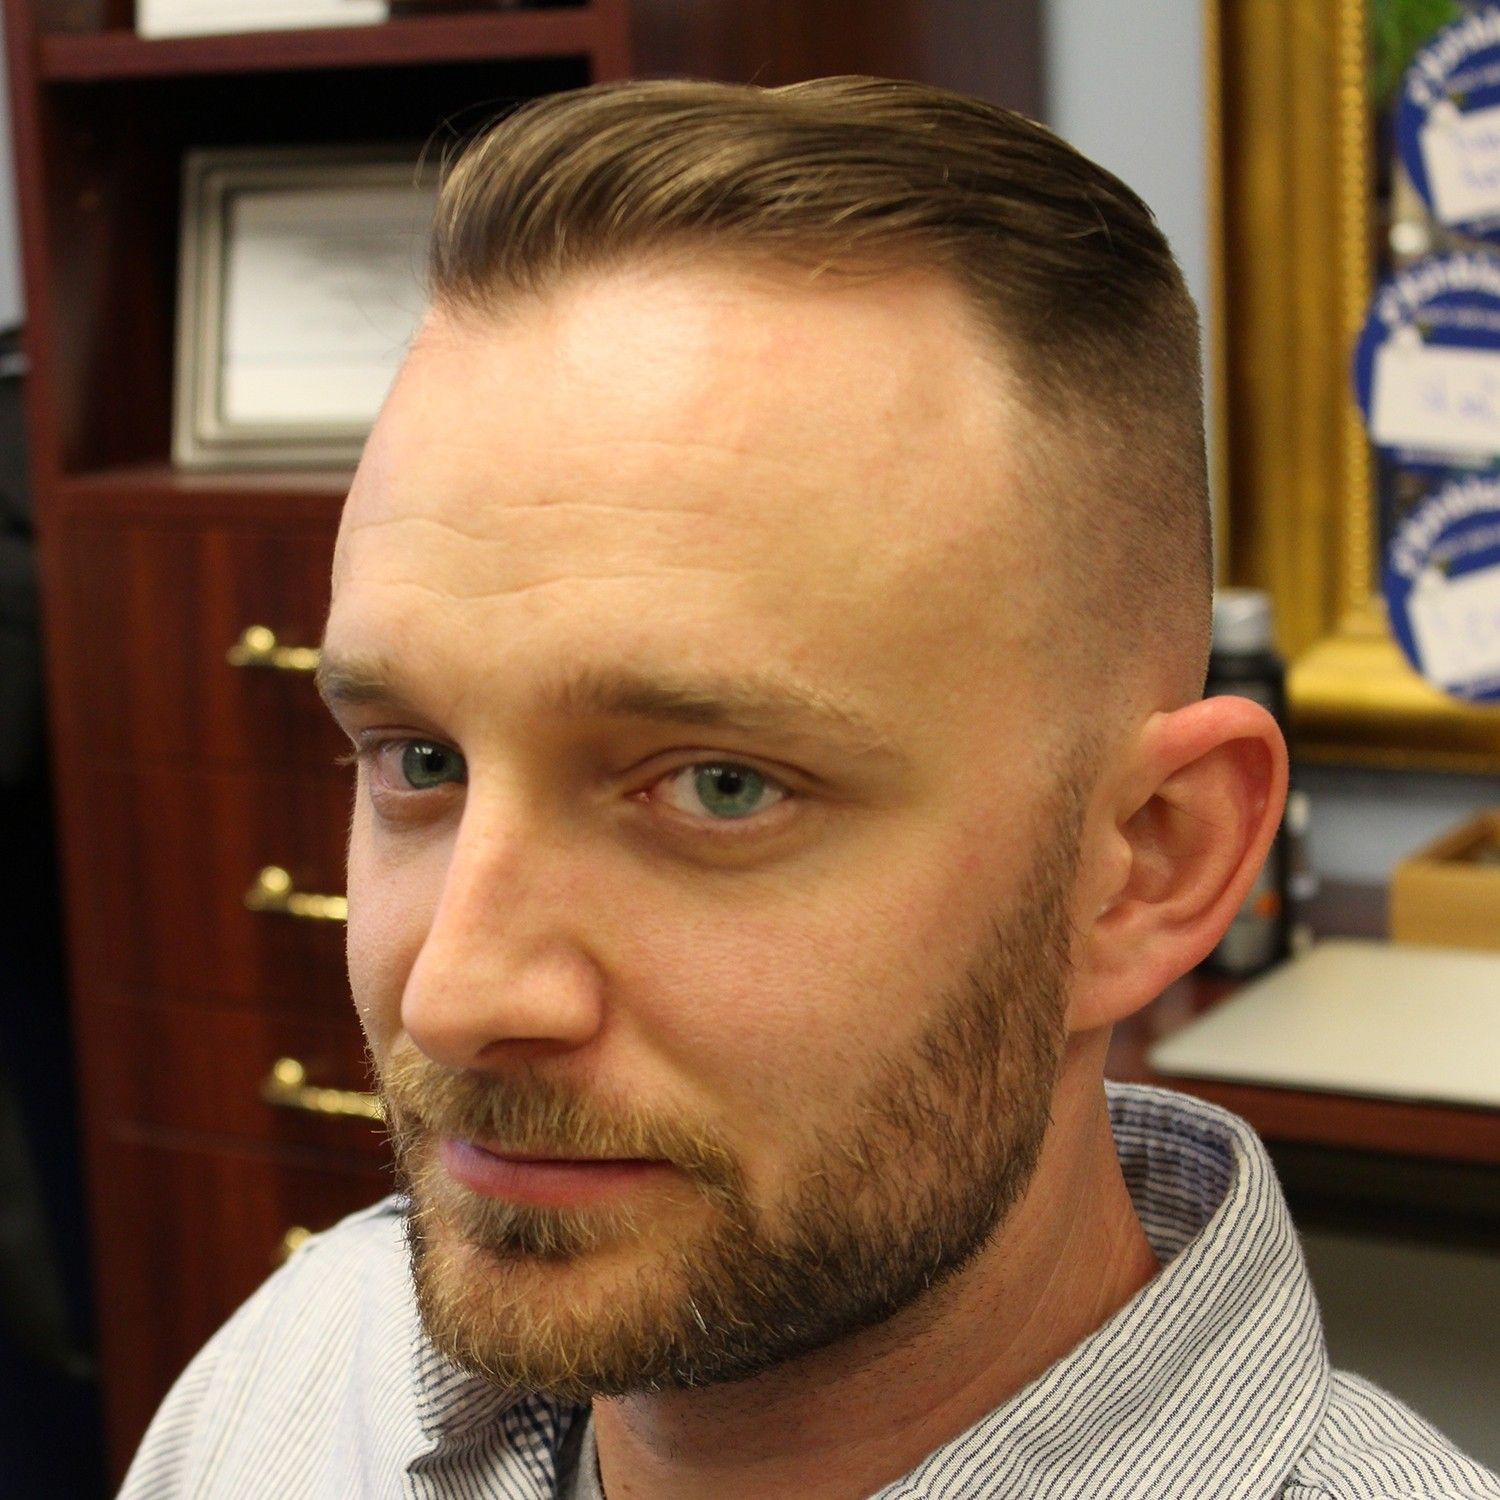 Personable Hairstyles For Balding Men 2017 Awesome Shaved Head With ...